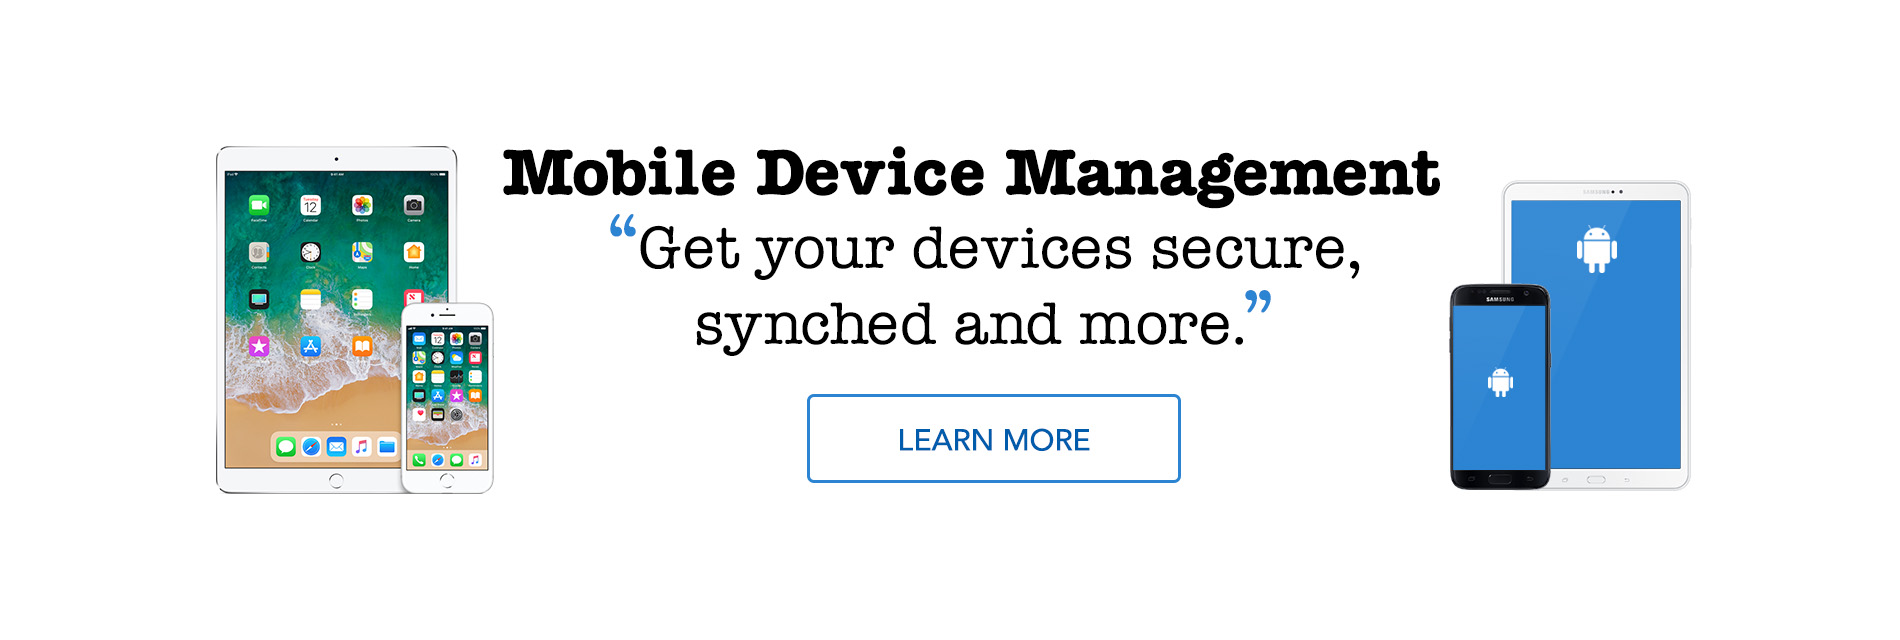 Mobile Device Management. Get your devices secure, synched and more.